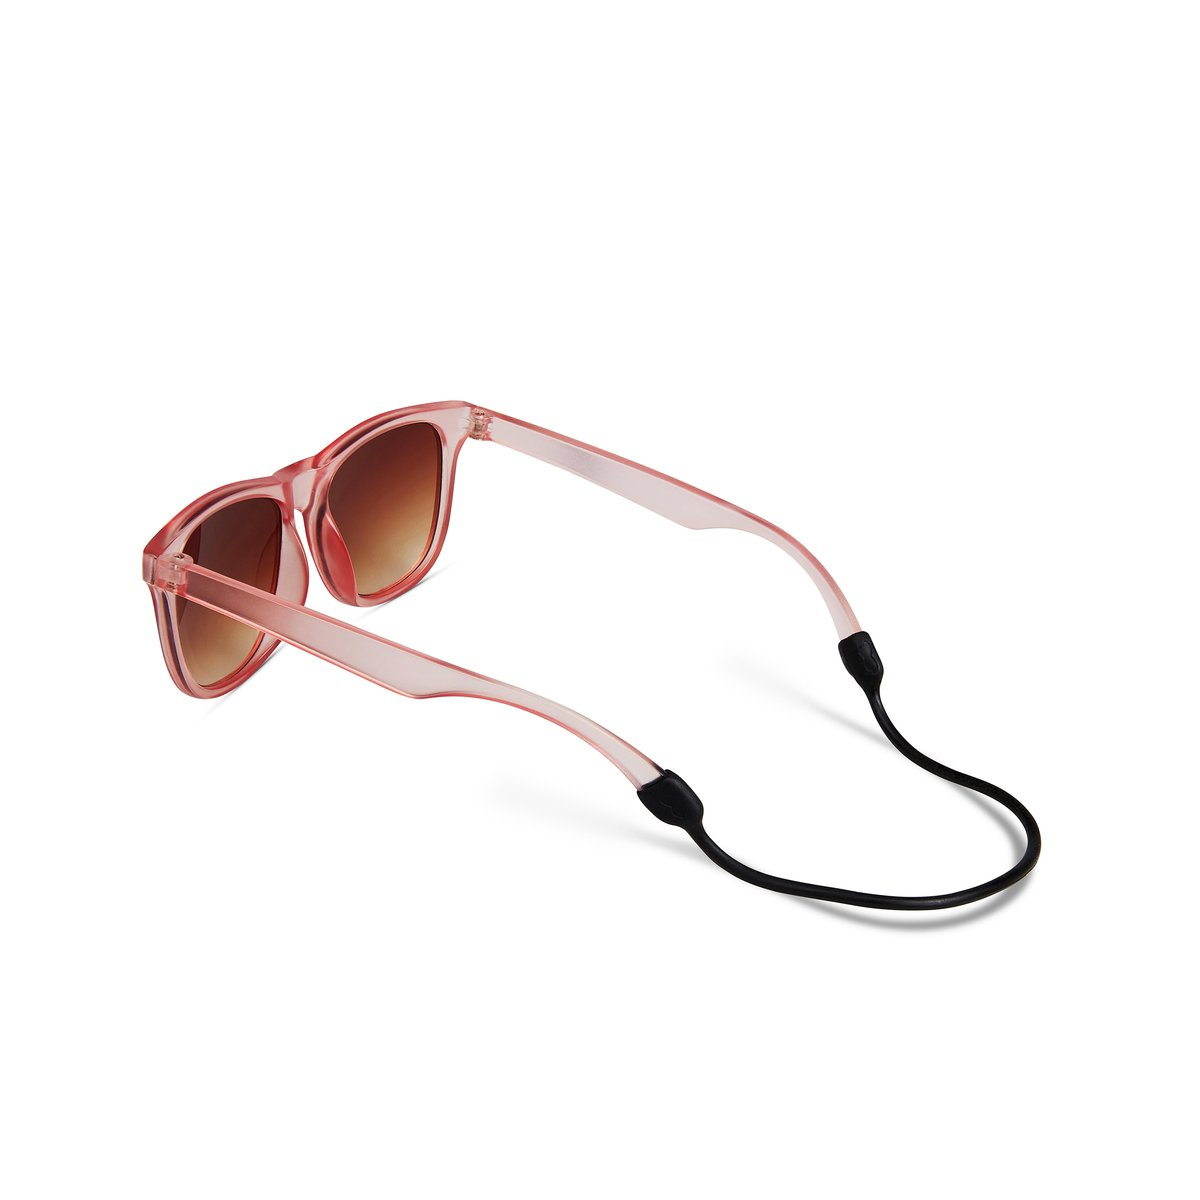 Hipsterkid Golds Baby Sunglasses - Rosé (0-2 years)